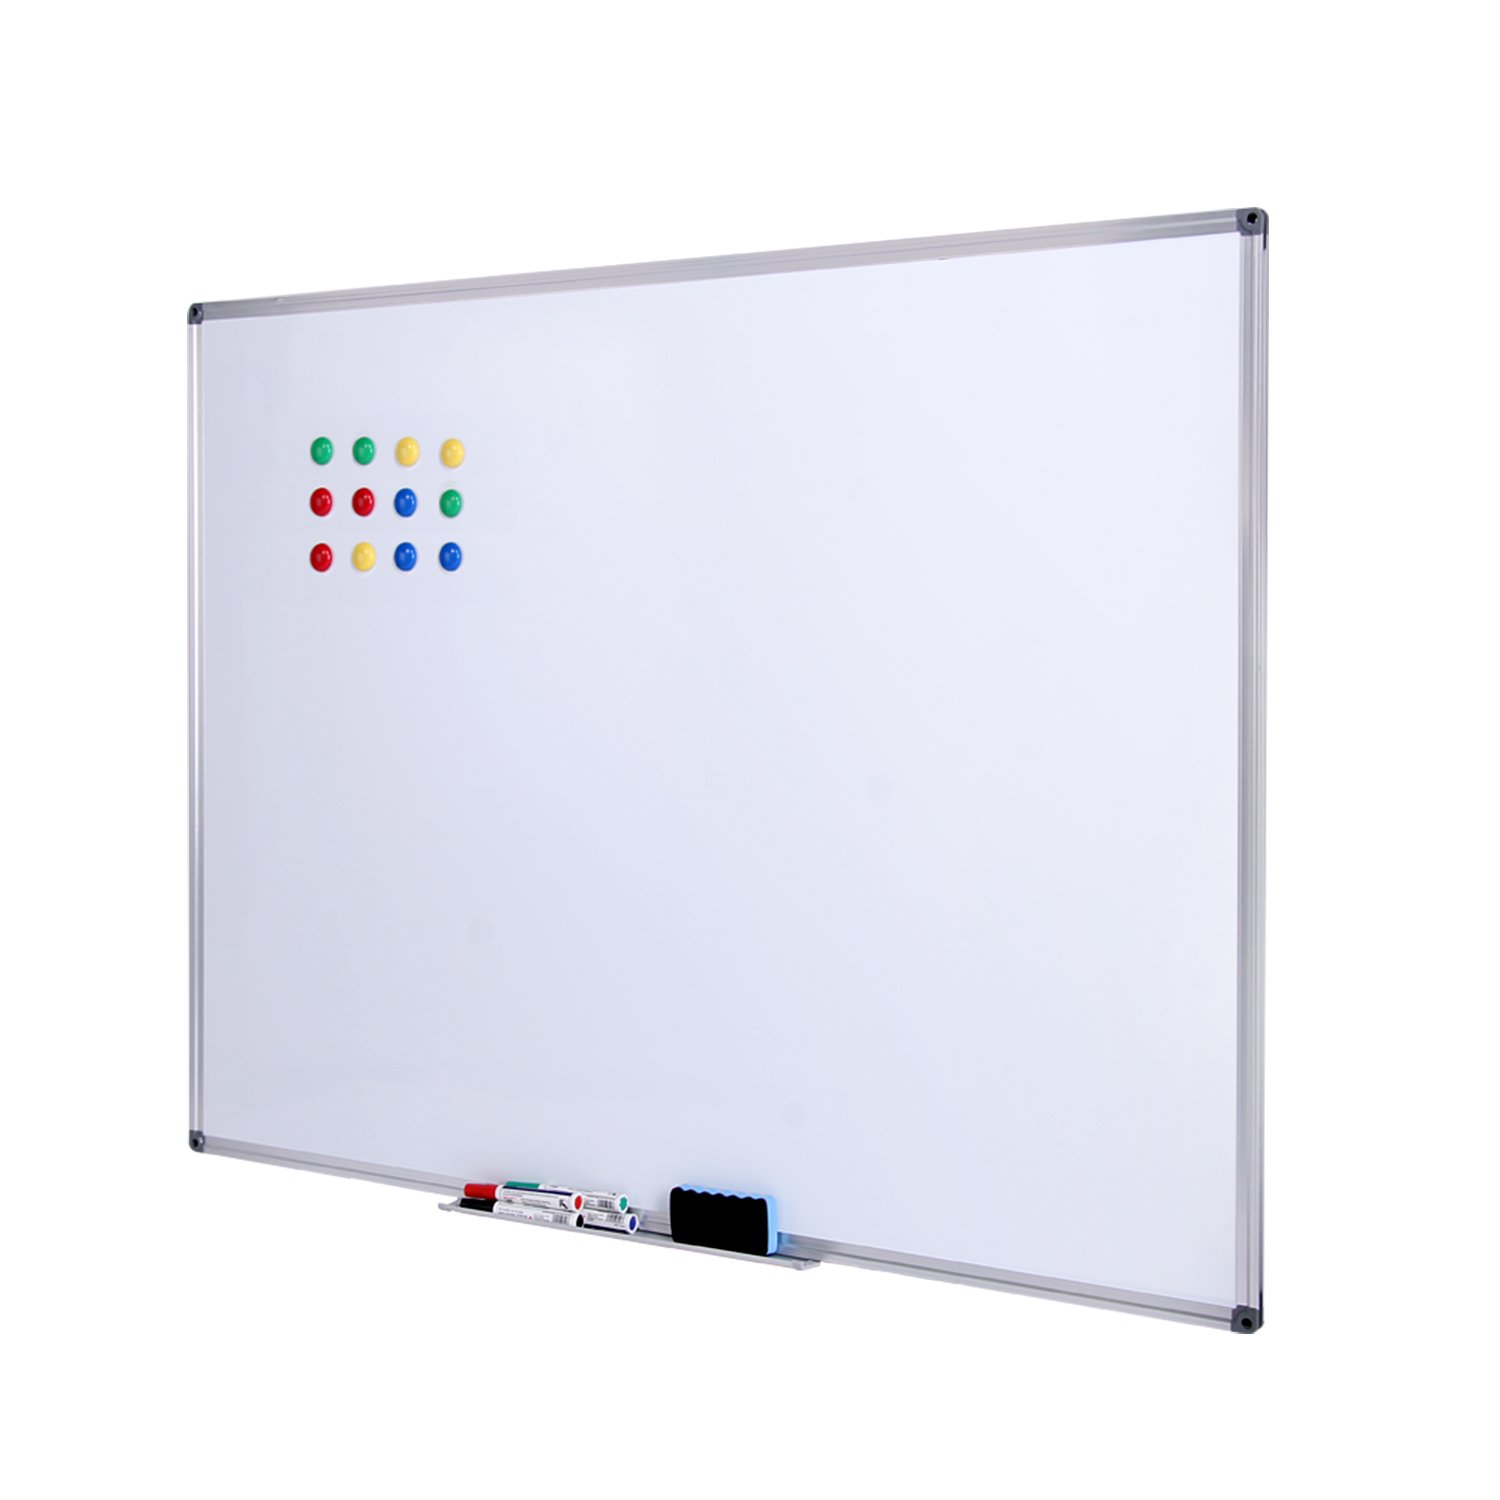 Dry Erase Board - Magnetic Dry Erase Board with Silver Aluminum Frame, Wall Mounted Whiteboard, NOSIVA Large white board with 4 Markers, 1 Eraser and 12 Magnets, 48 x 36 Inches (48x36+4 markers) low-cost